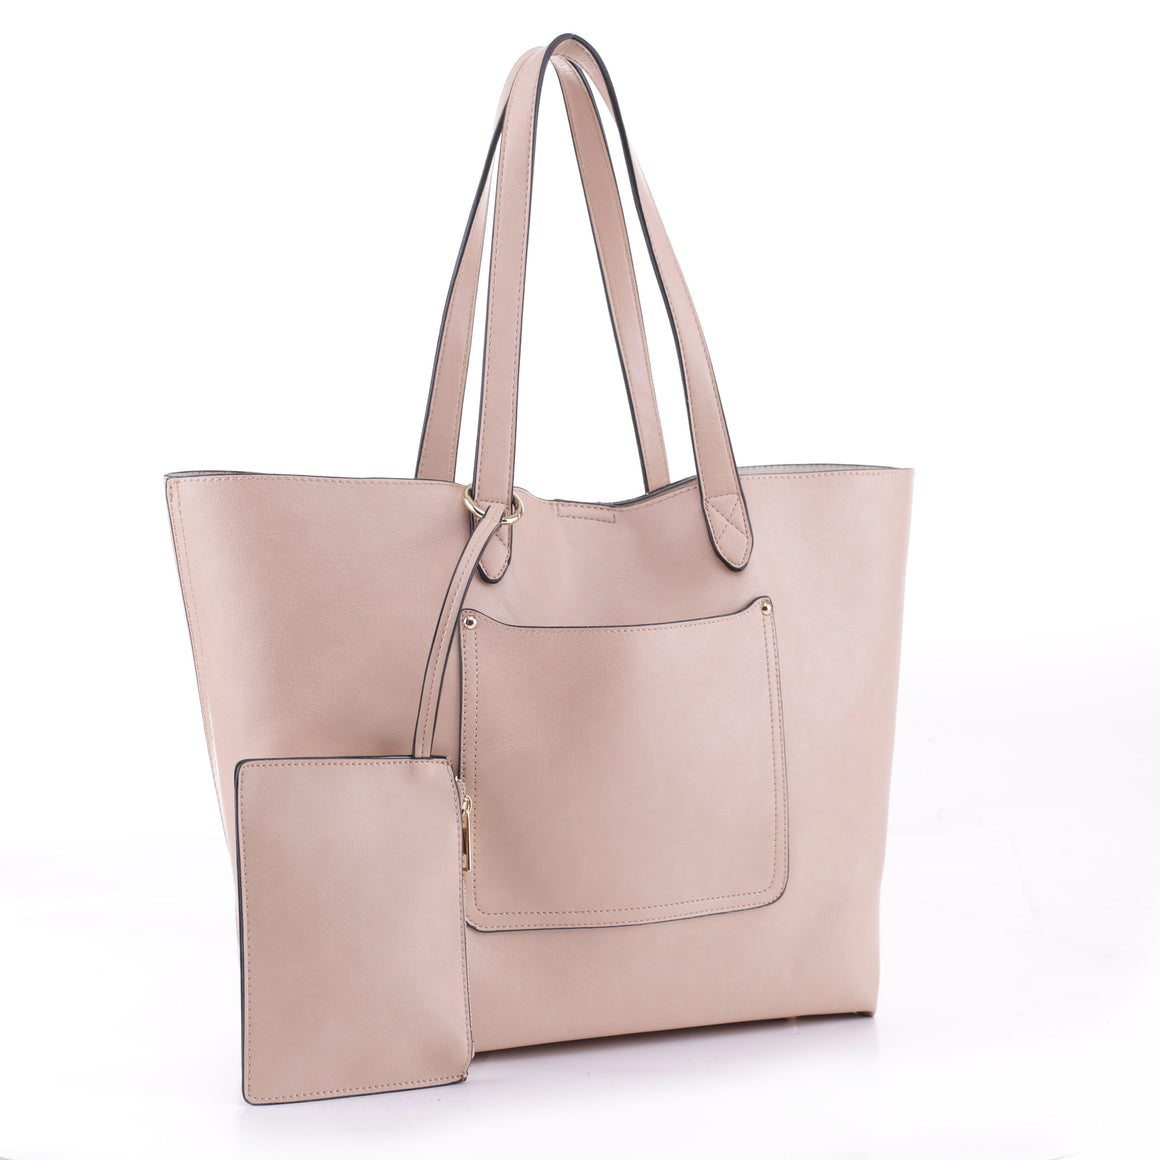 Summer Beauty Shopper Handbag